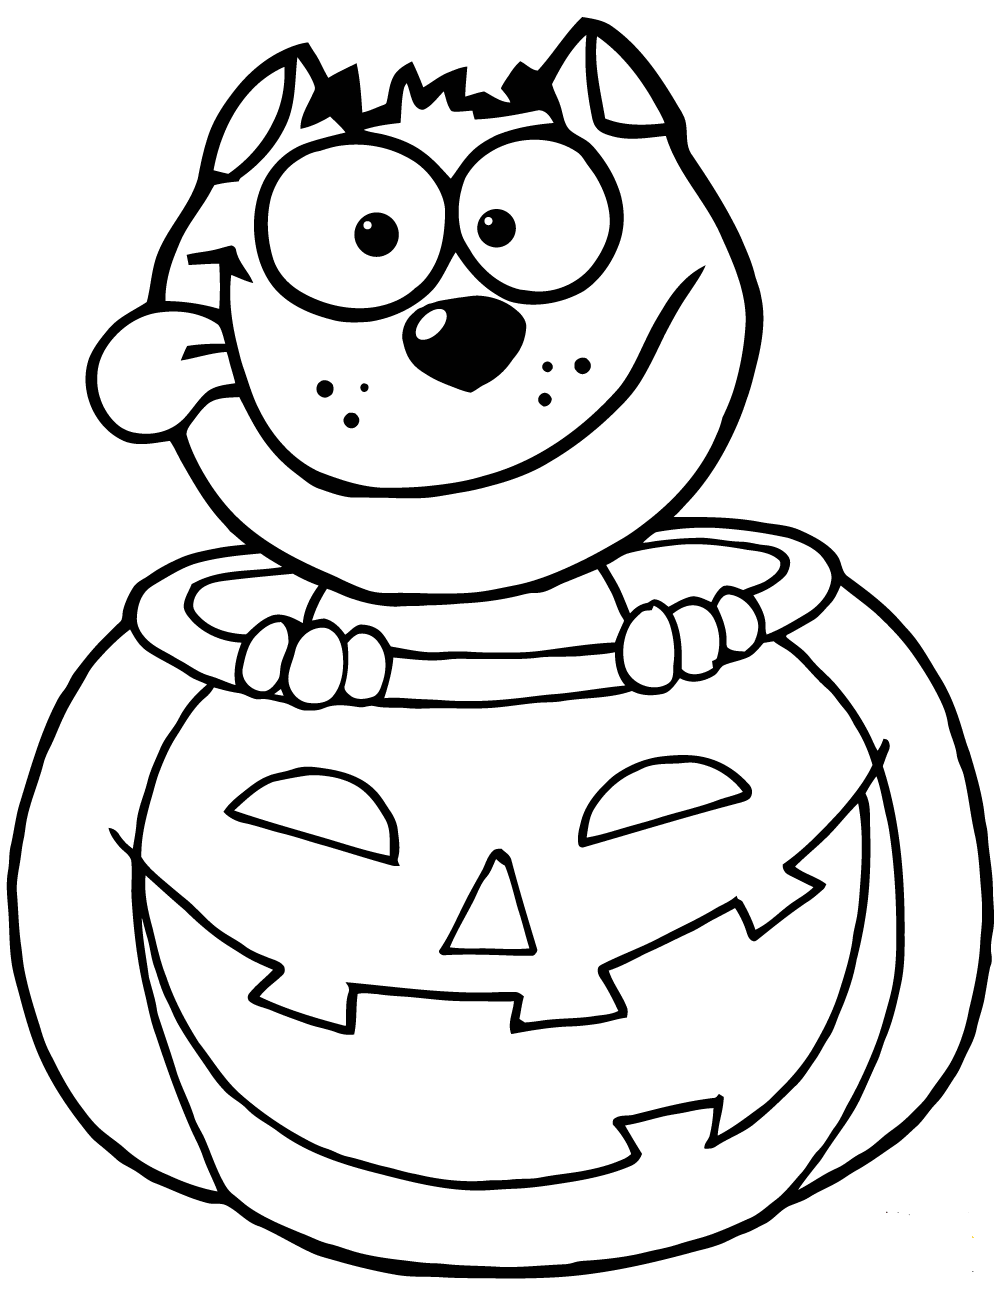 pumpkin colouring pictures free printable pumpkin coloring pages for kids cool2bkids pumpkin pictures colouring